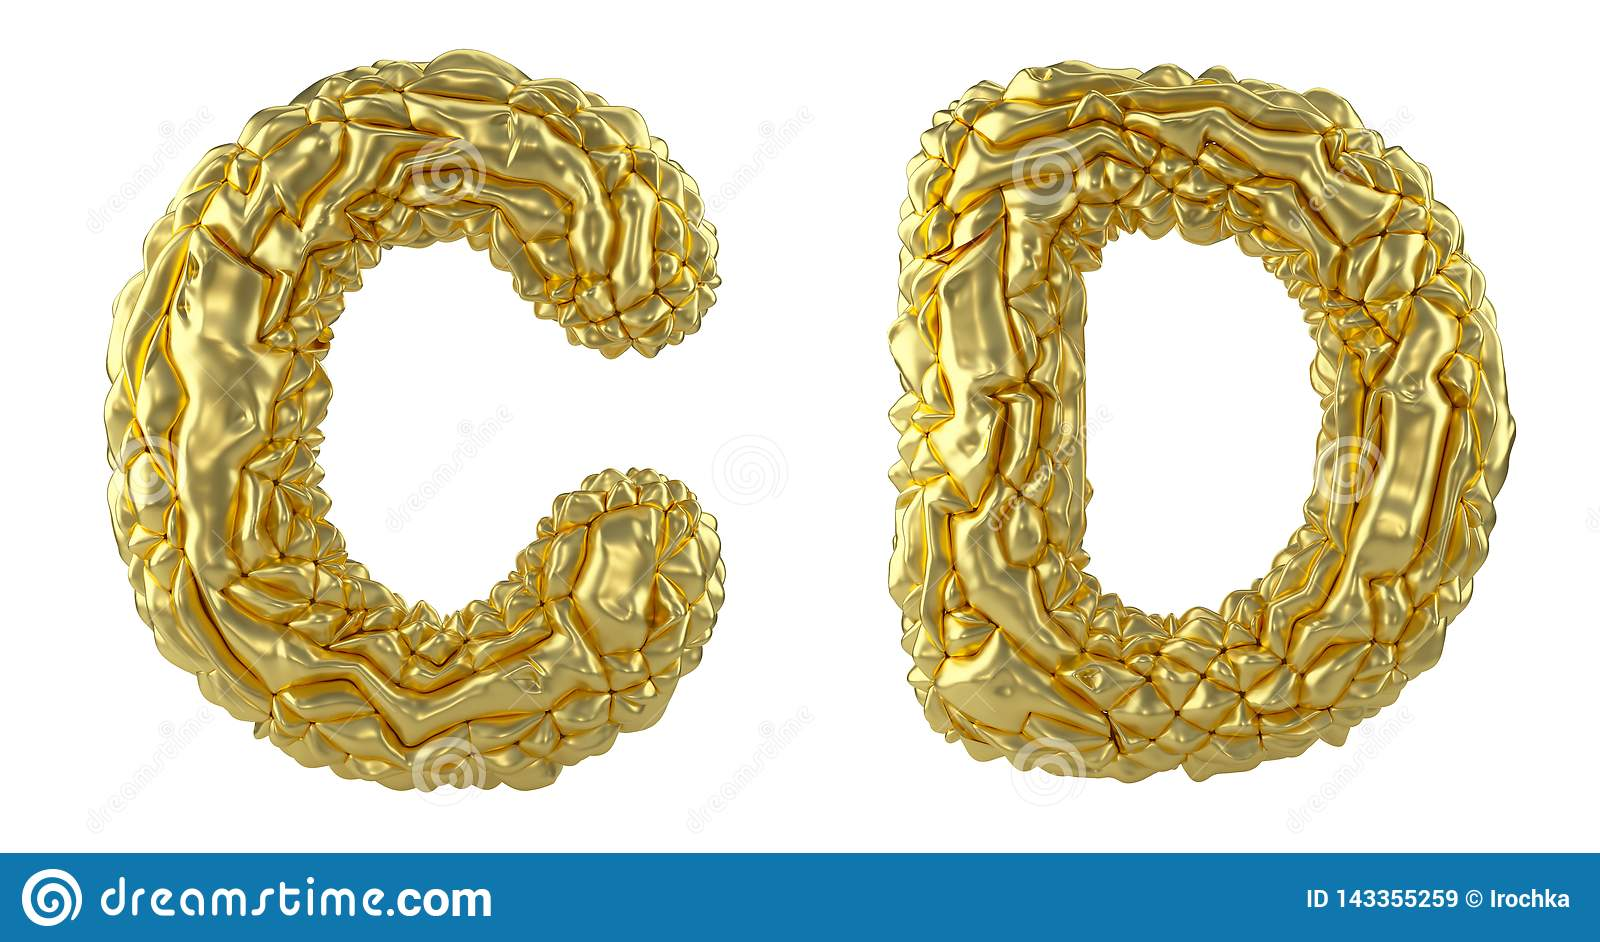 Realistic 3D letters set C, D made of crumpled foil. Collection symbols of crumpled gold foil isolated on white